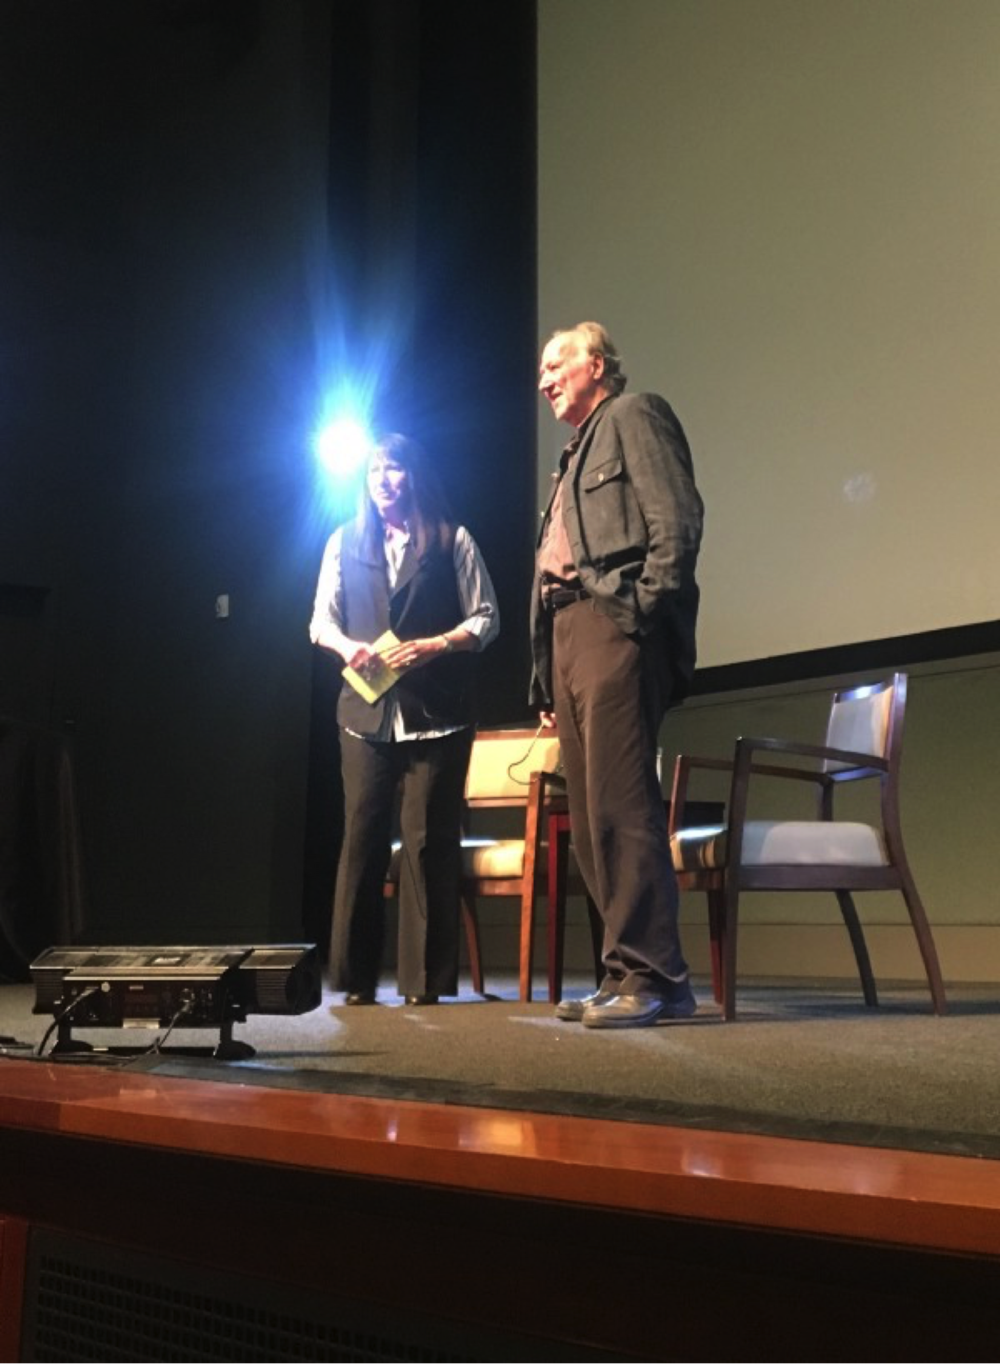 Patrice Petro, left, director of UCSB's Carsey-Wolf Center, and filmmaker Werner Herzog, arrive on the Pollock Theater stage, to roaring audience applause.